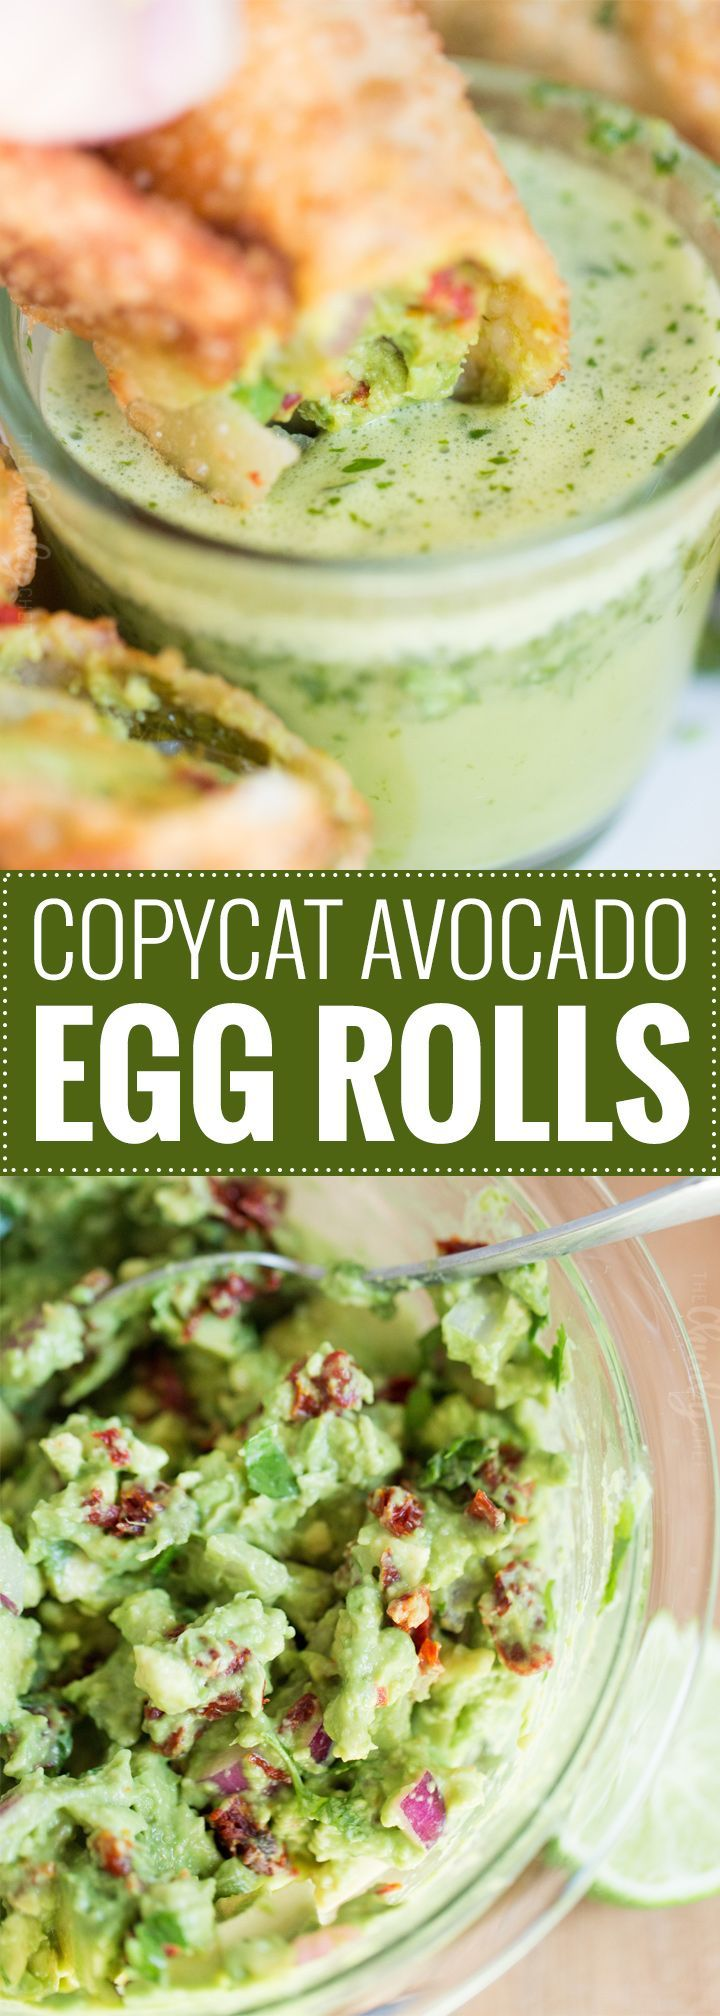 Copycat Avocado Egg Rolls   A copycat of The Cheesecake Factory's avocado egg rolls, this recipe is loaded with amazing flavors and served with the most delicious honey cilantro dipping sauce! Not a spot on copycat, but one made with easy to find ingredients!   https://www.thechunkychef.com   #appetizer #copycat #eggroll #avocado #party